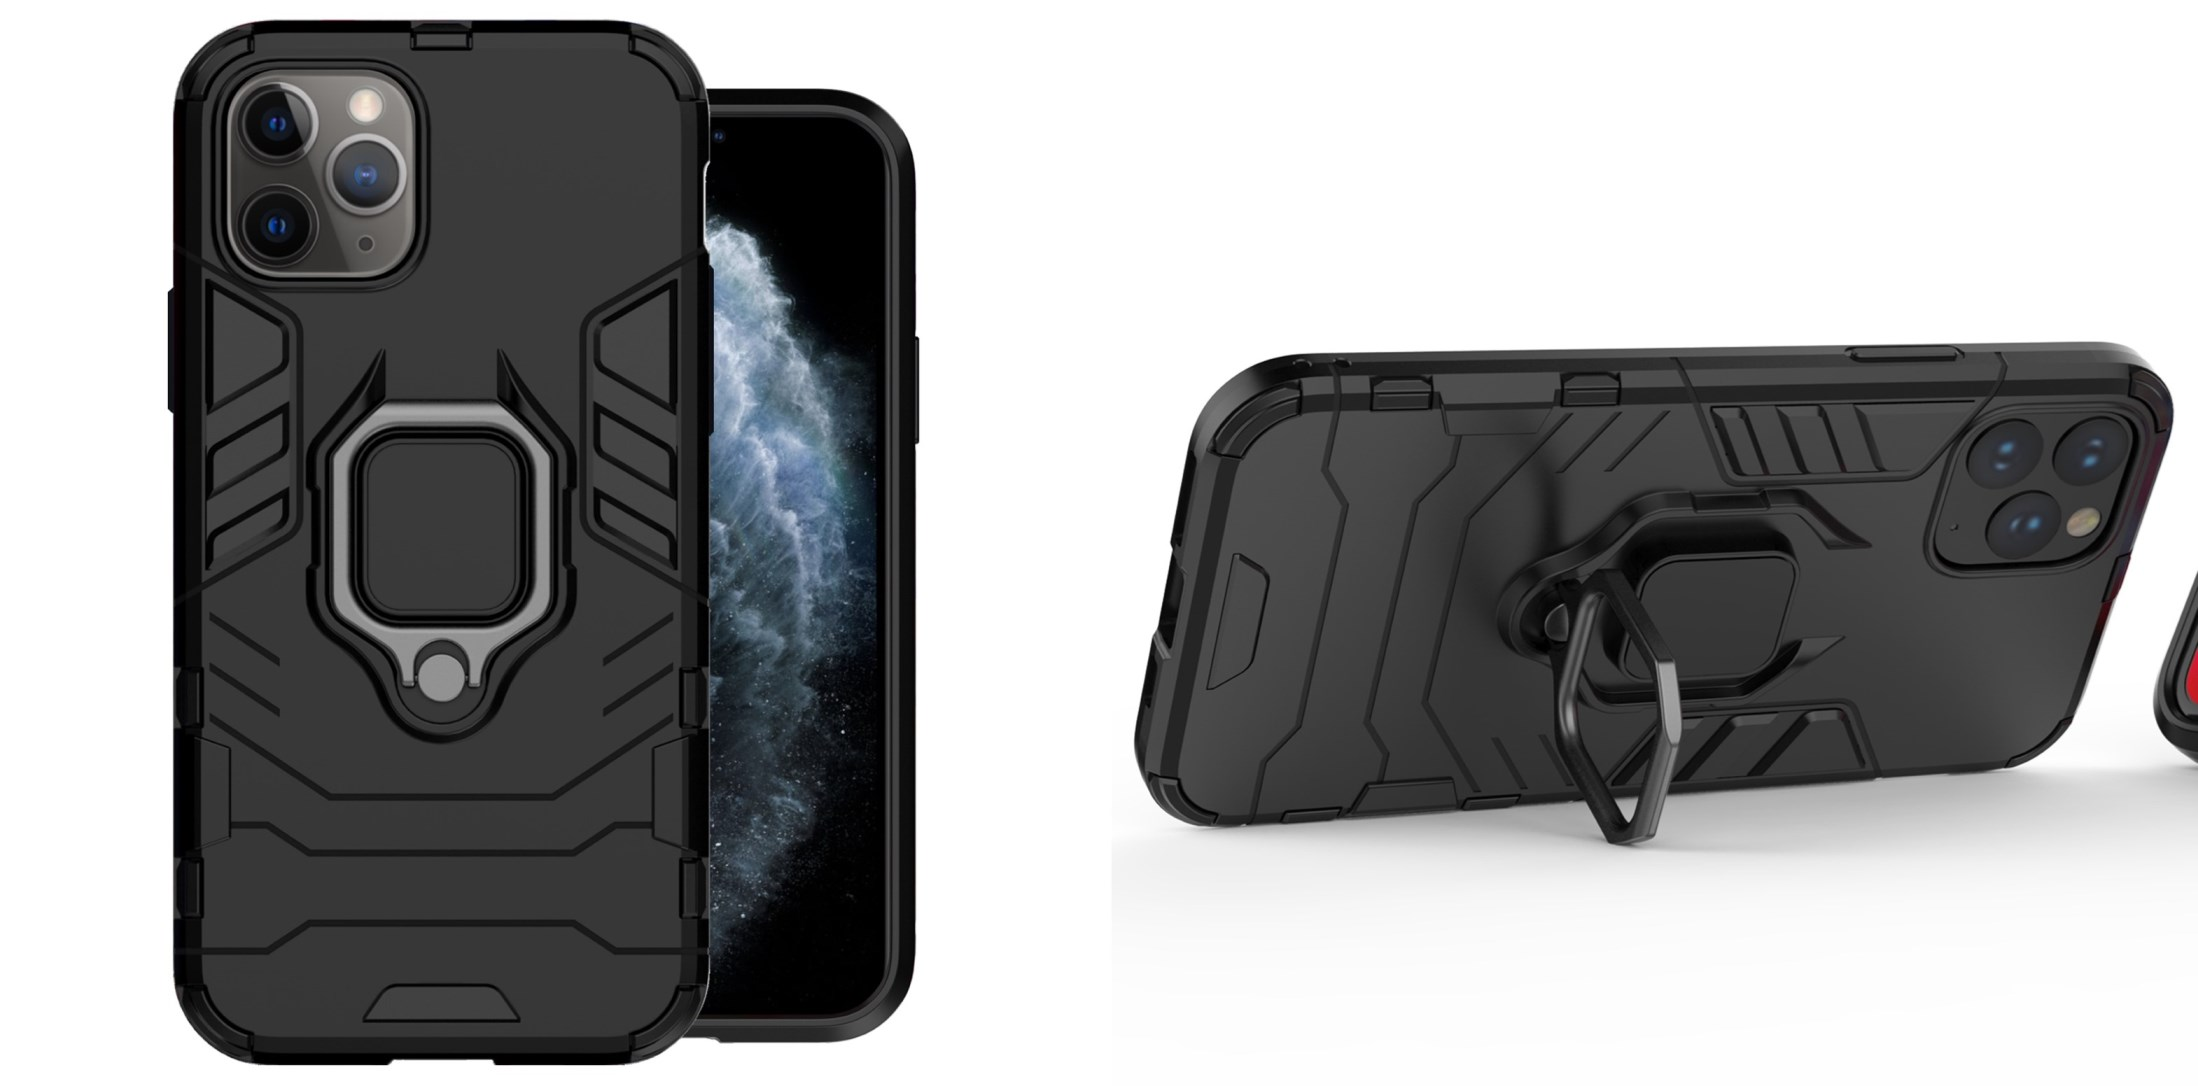 noziroh tank iphone 11 cover case silicone military design shockproof black